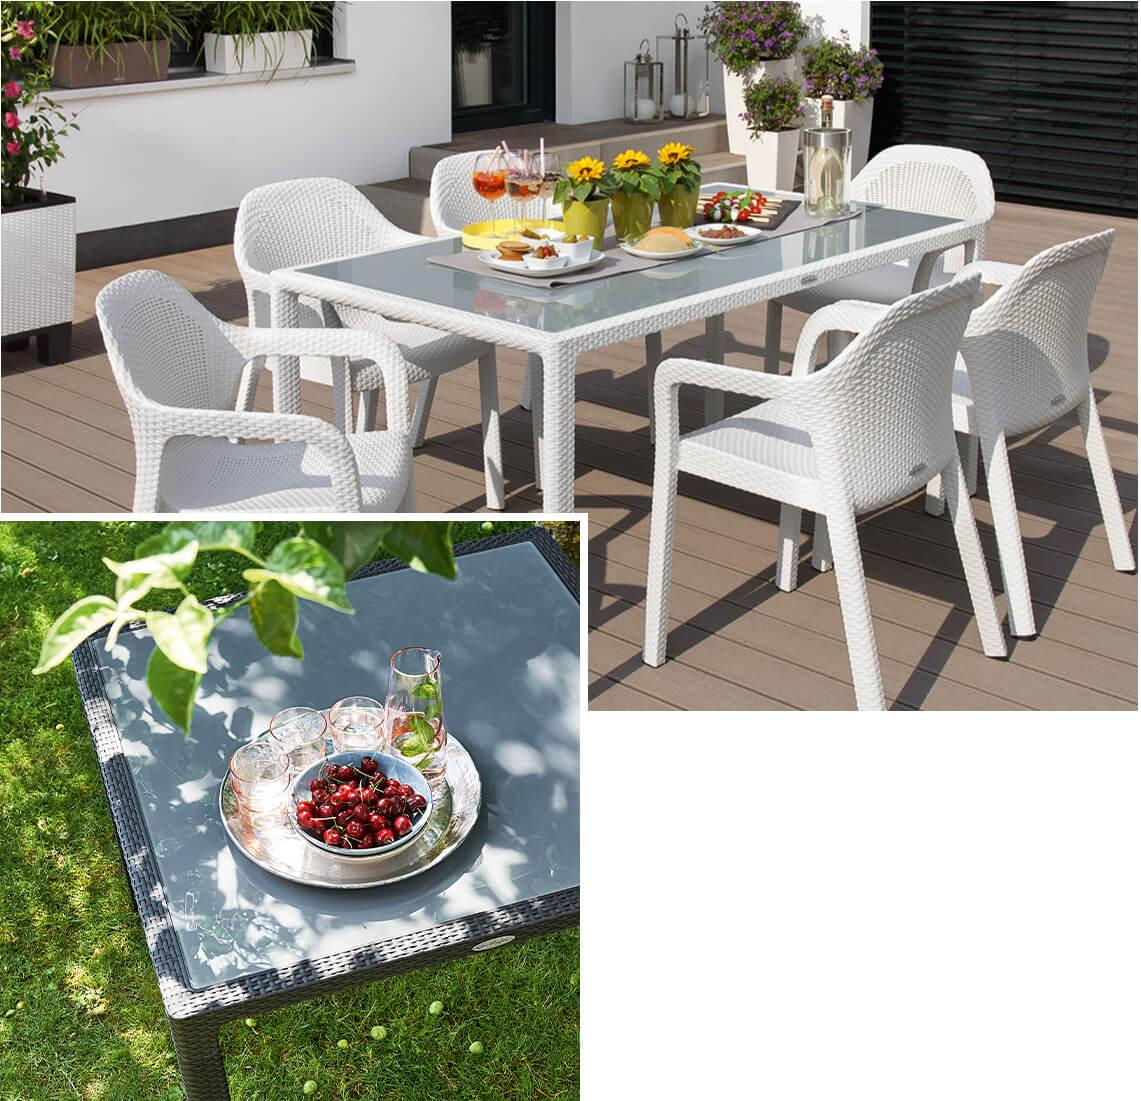 LECHUZA garden tables in white and granite